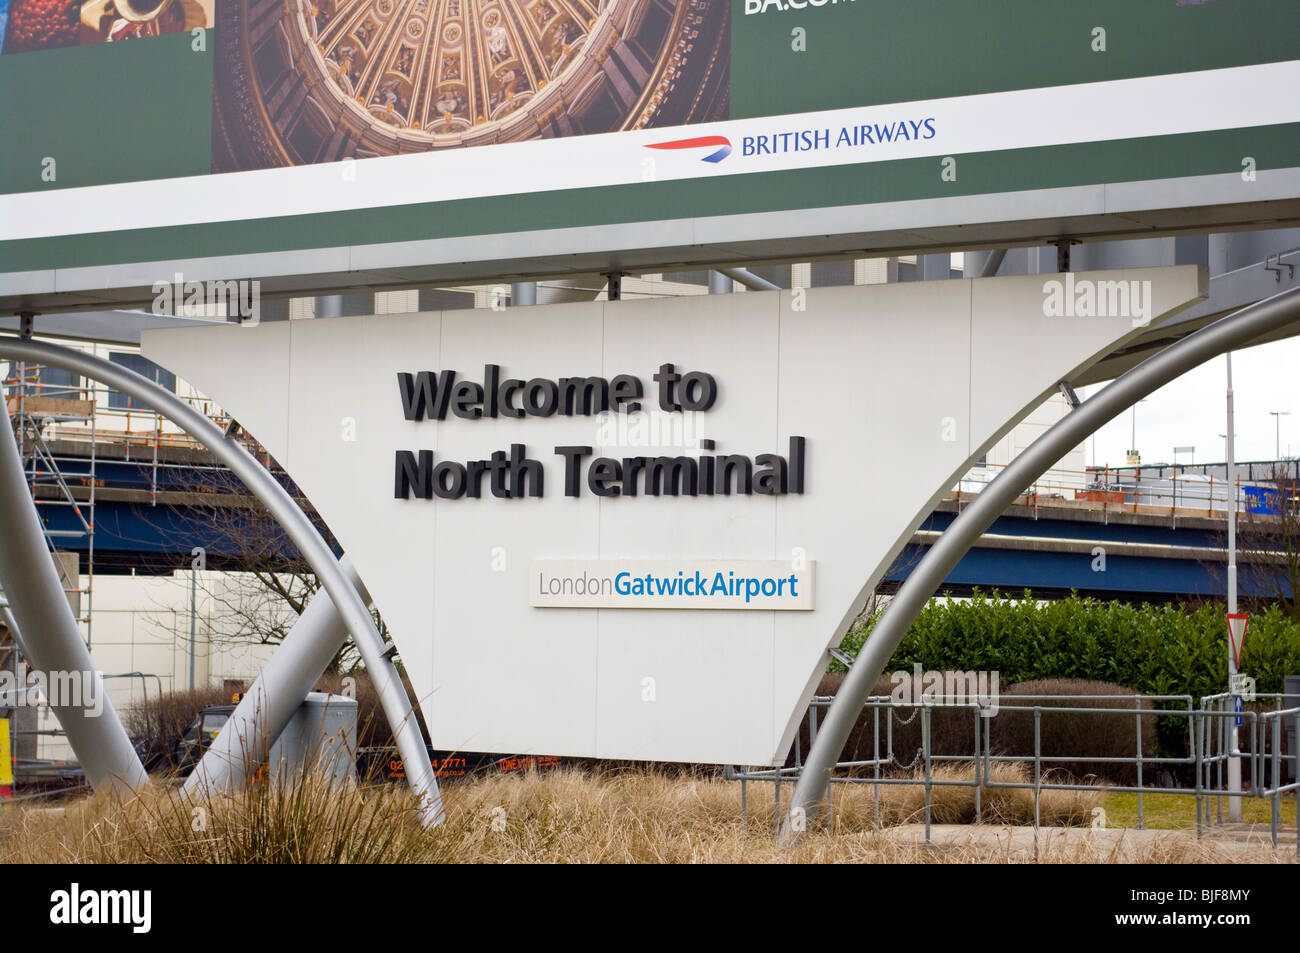 Welcome To North Terminal Sign At Gatwick Airport - Stock Image